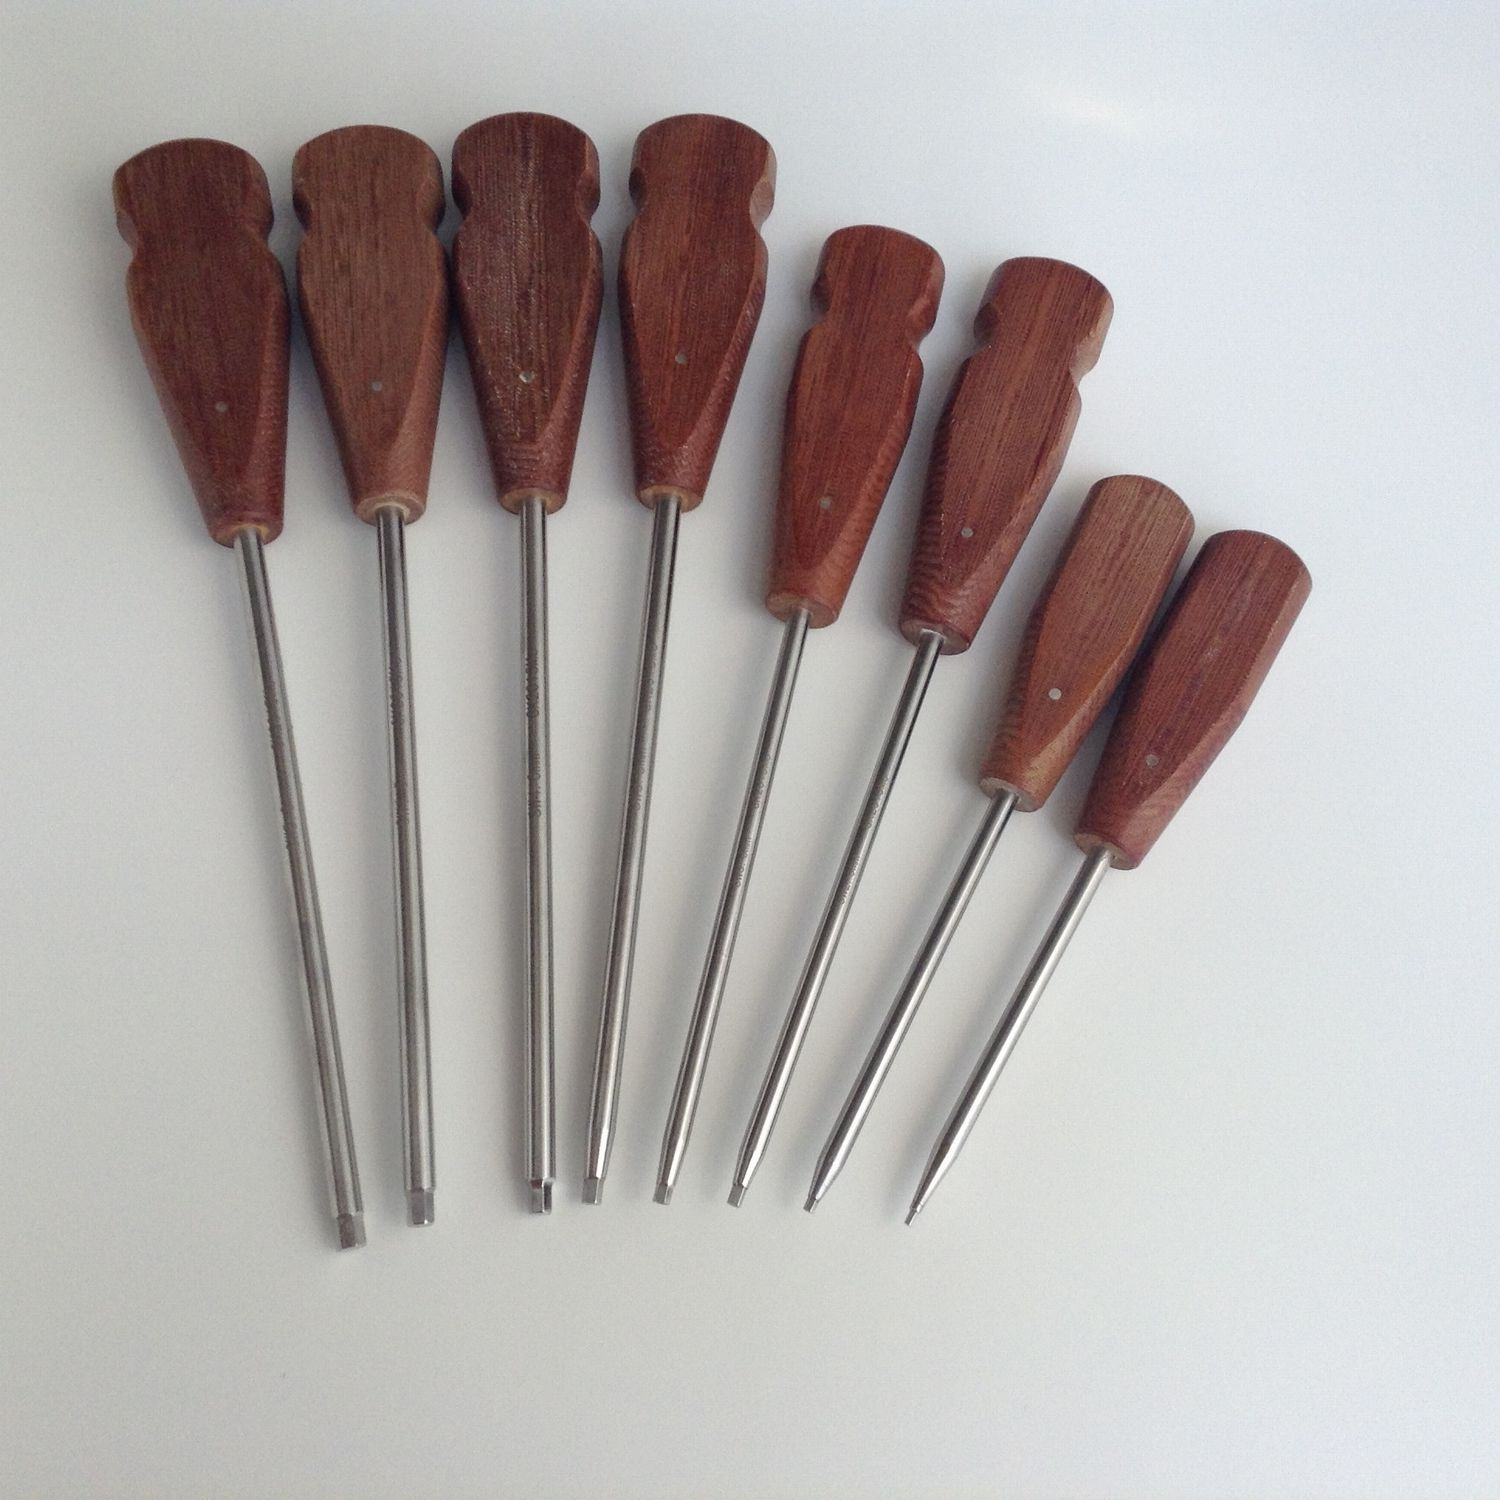 A set of 8 pcs Bone Screwdriver Hex Head Veterinary orthopedics Instruments 100 pcs cattle bone